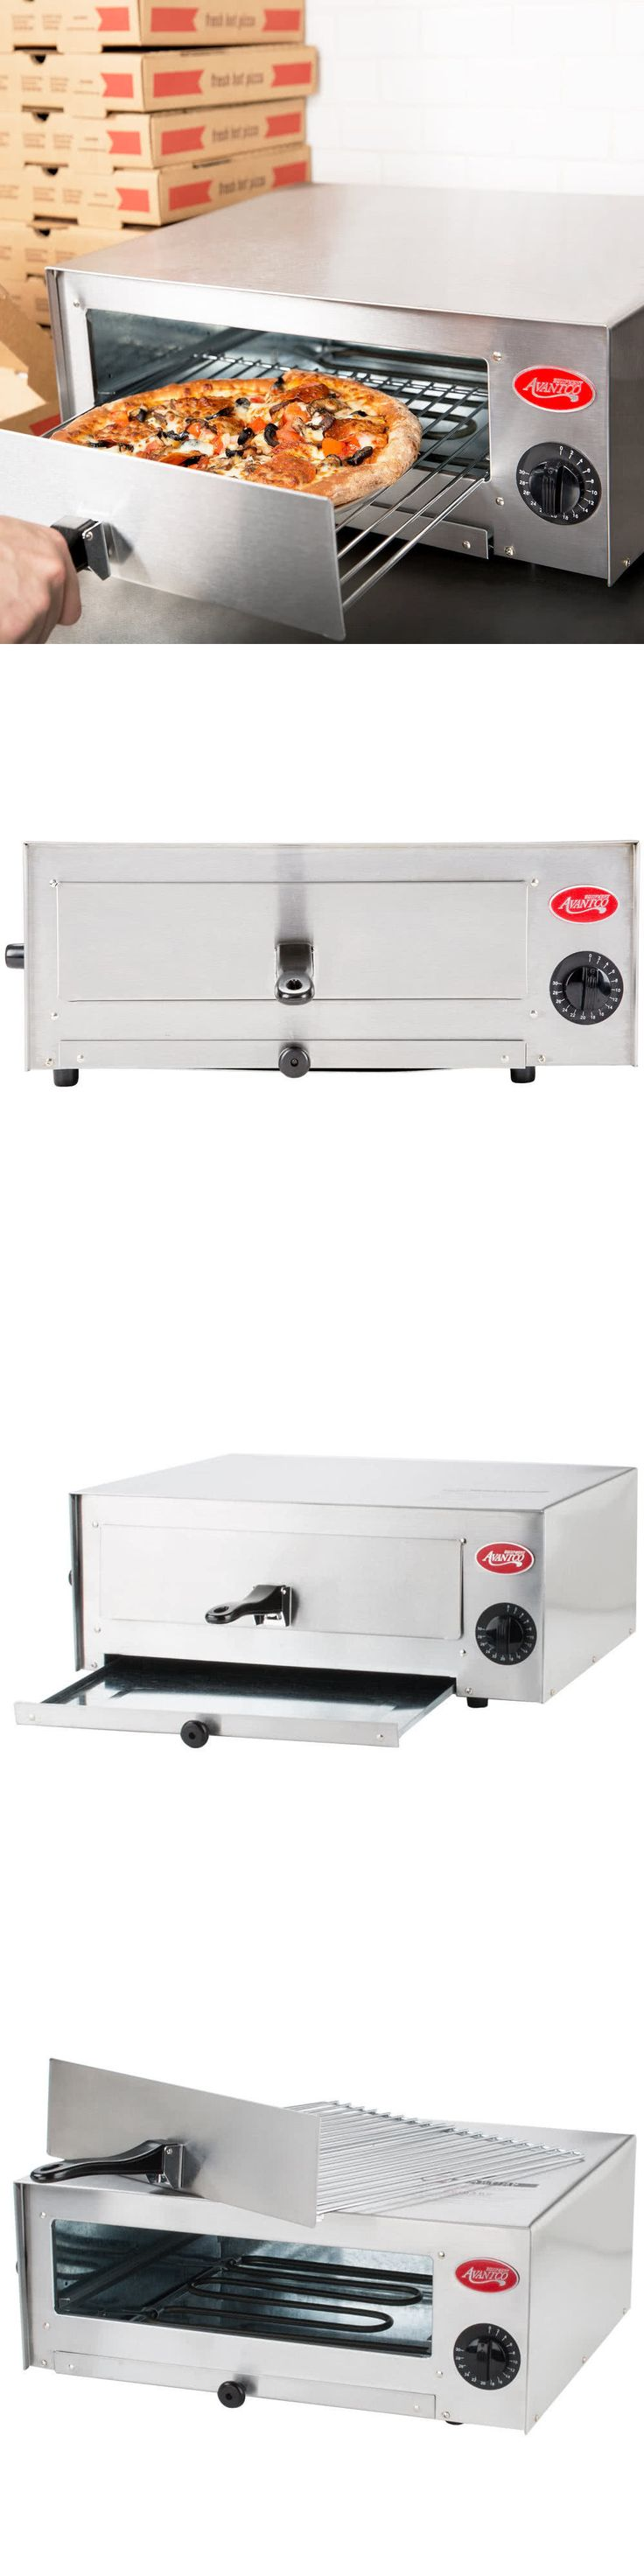 Toaster Ovens 122930: Concession Stand Countertop Pizza Snack Oven Stainless Steel Commercial 120V -> BUY IT NOW ONLY: $66.97 on eBay!